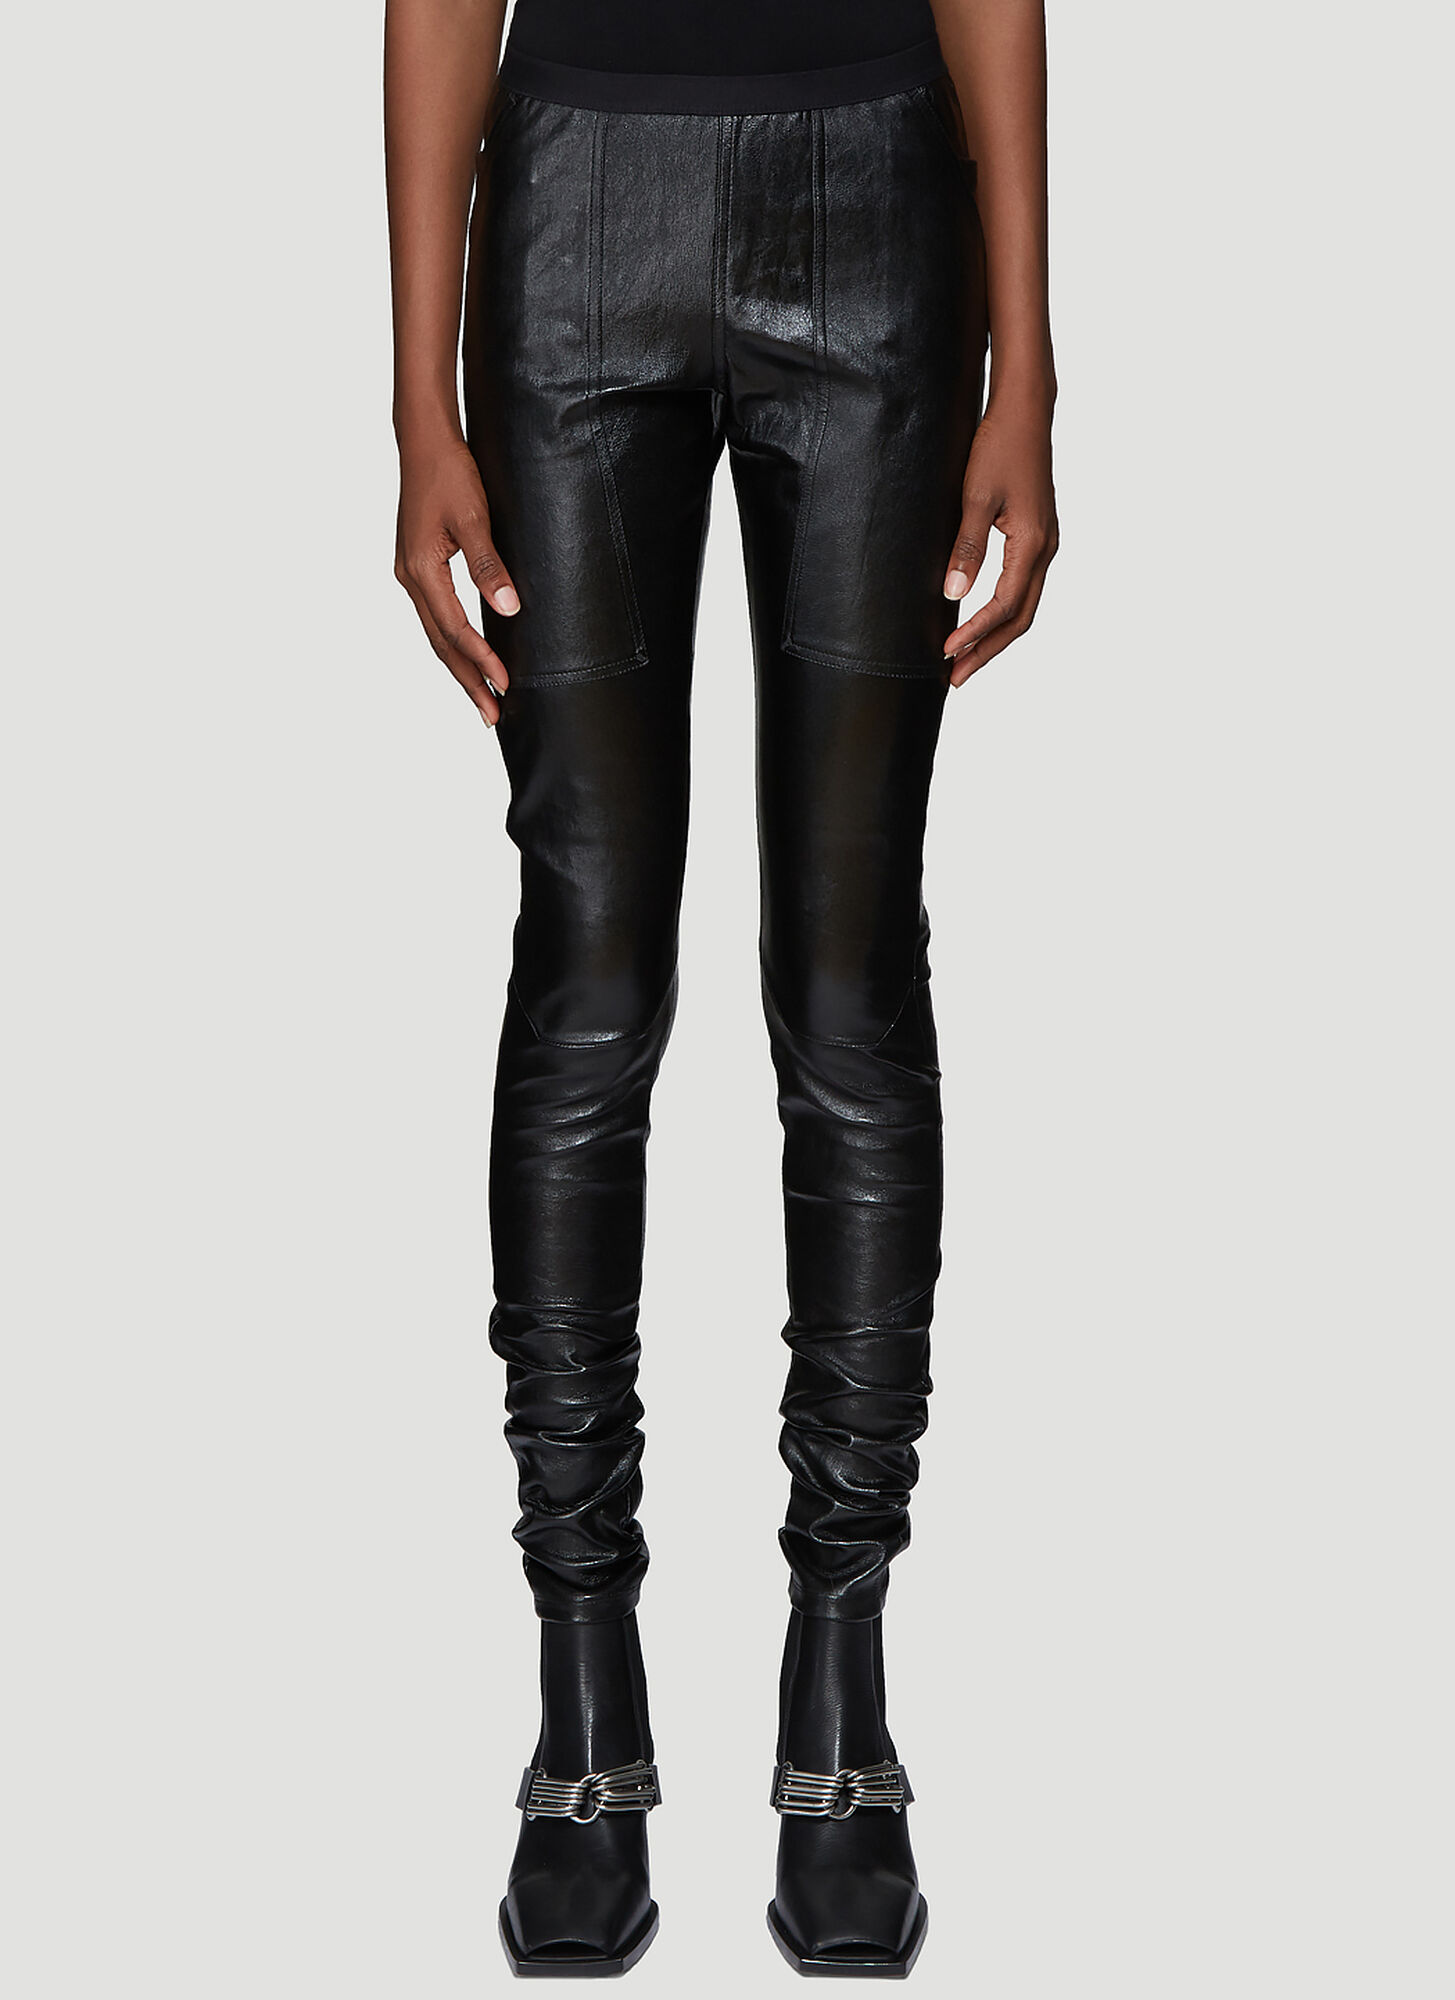 Photo of Rick Owens Leather Leggings in Black - Rick Owens Leggings